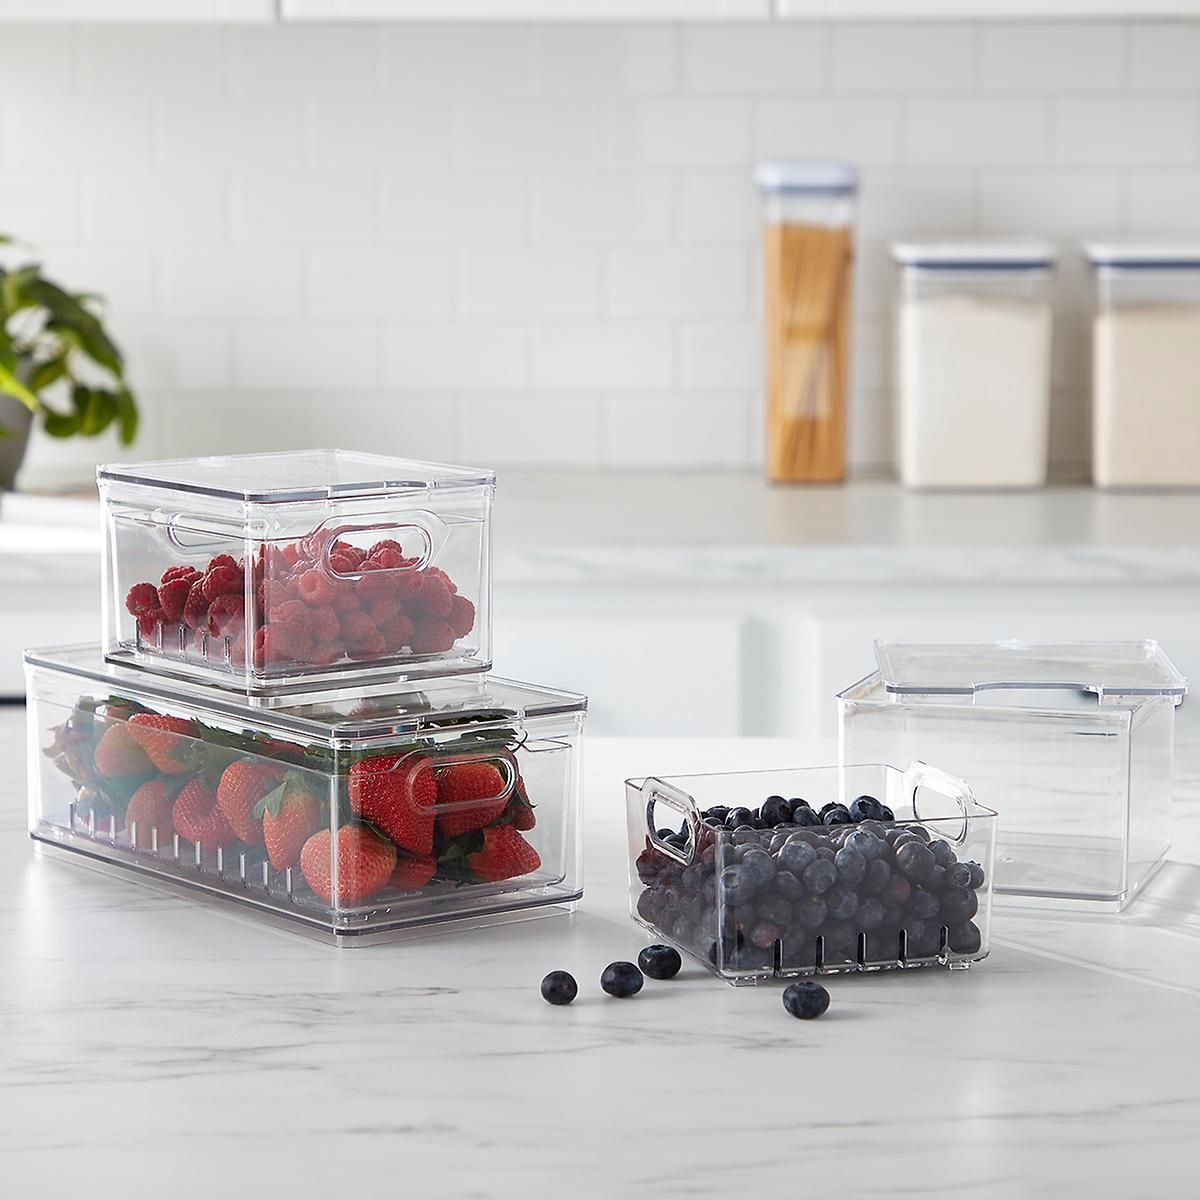 Three clear storage bins containing blueberries, raspberries, and strawberries